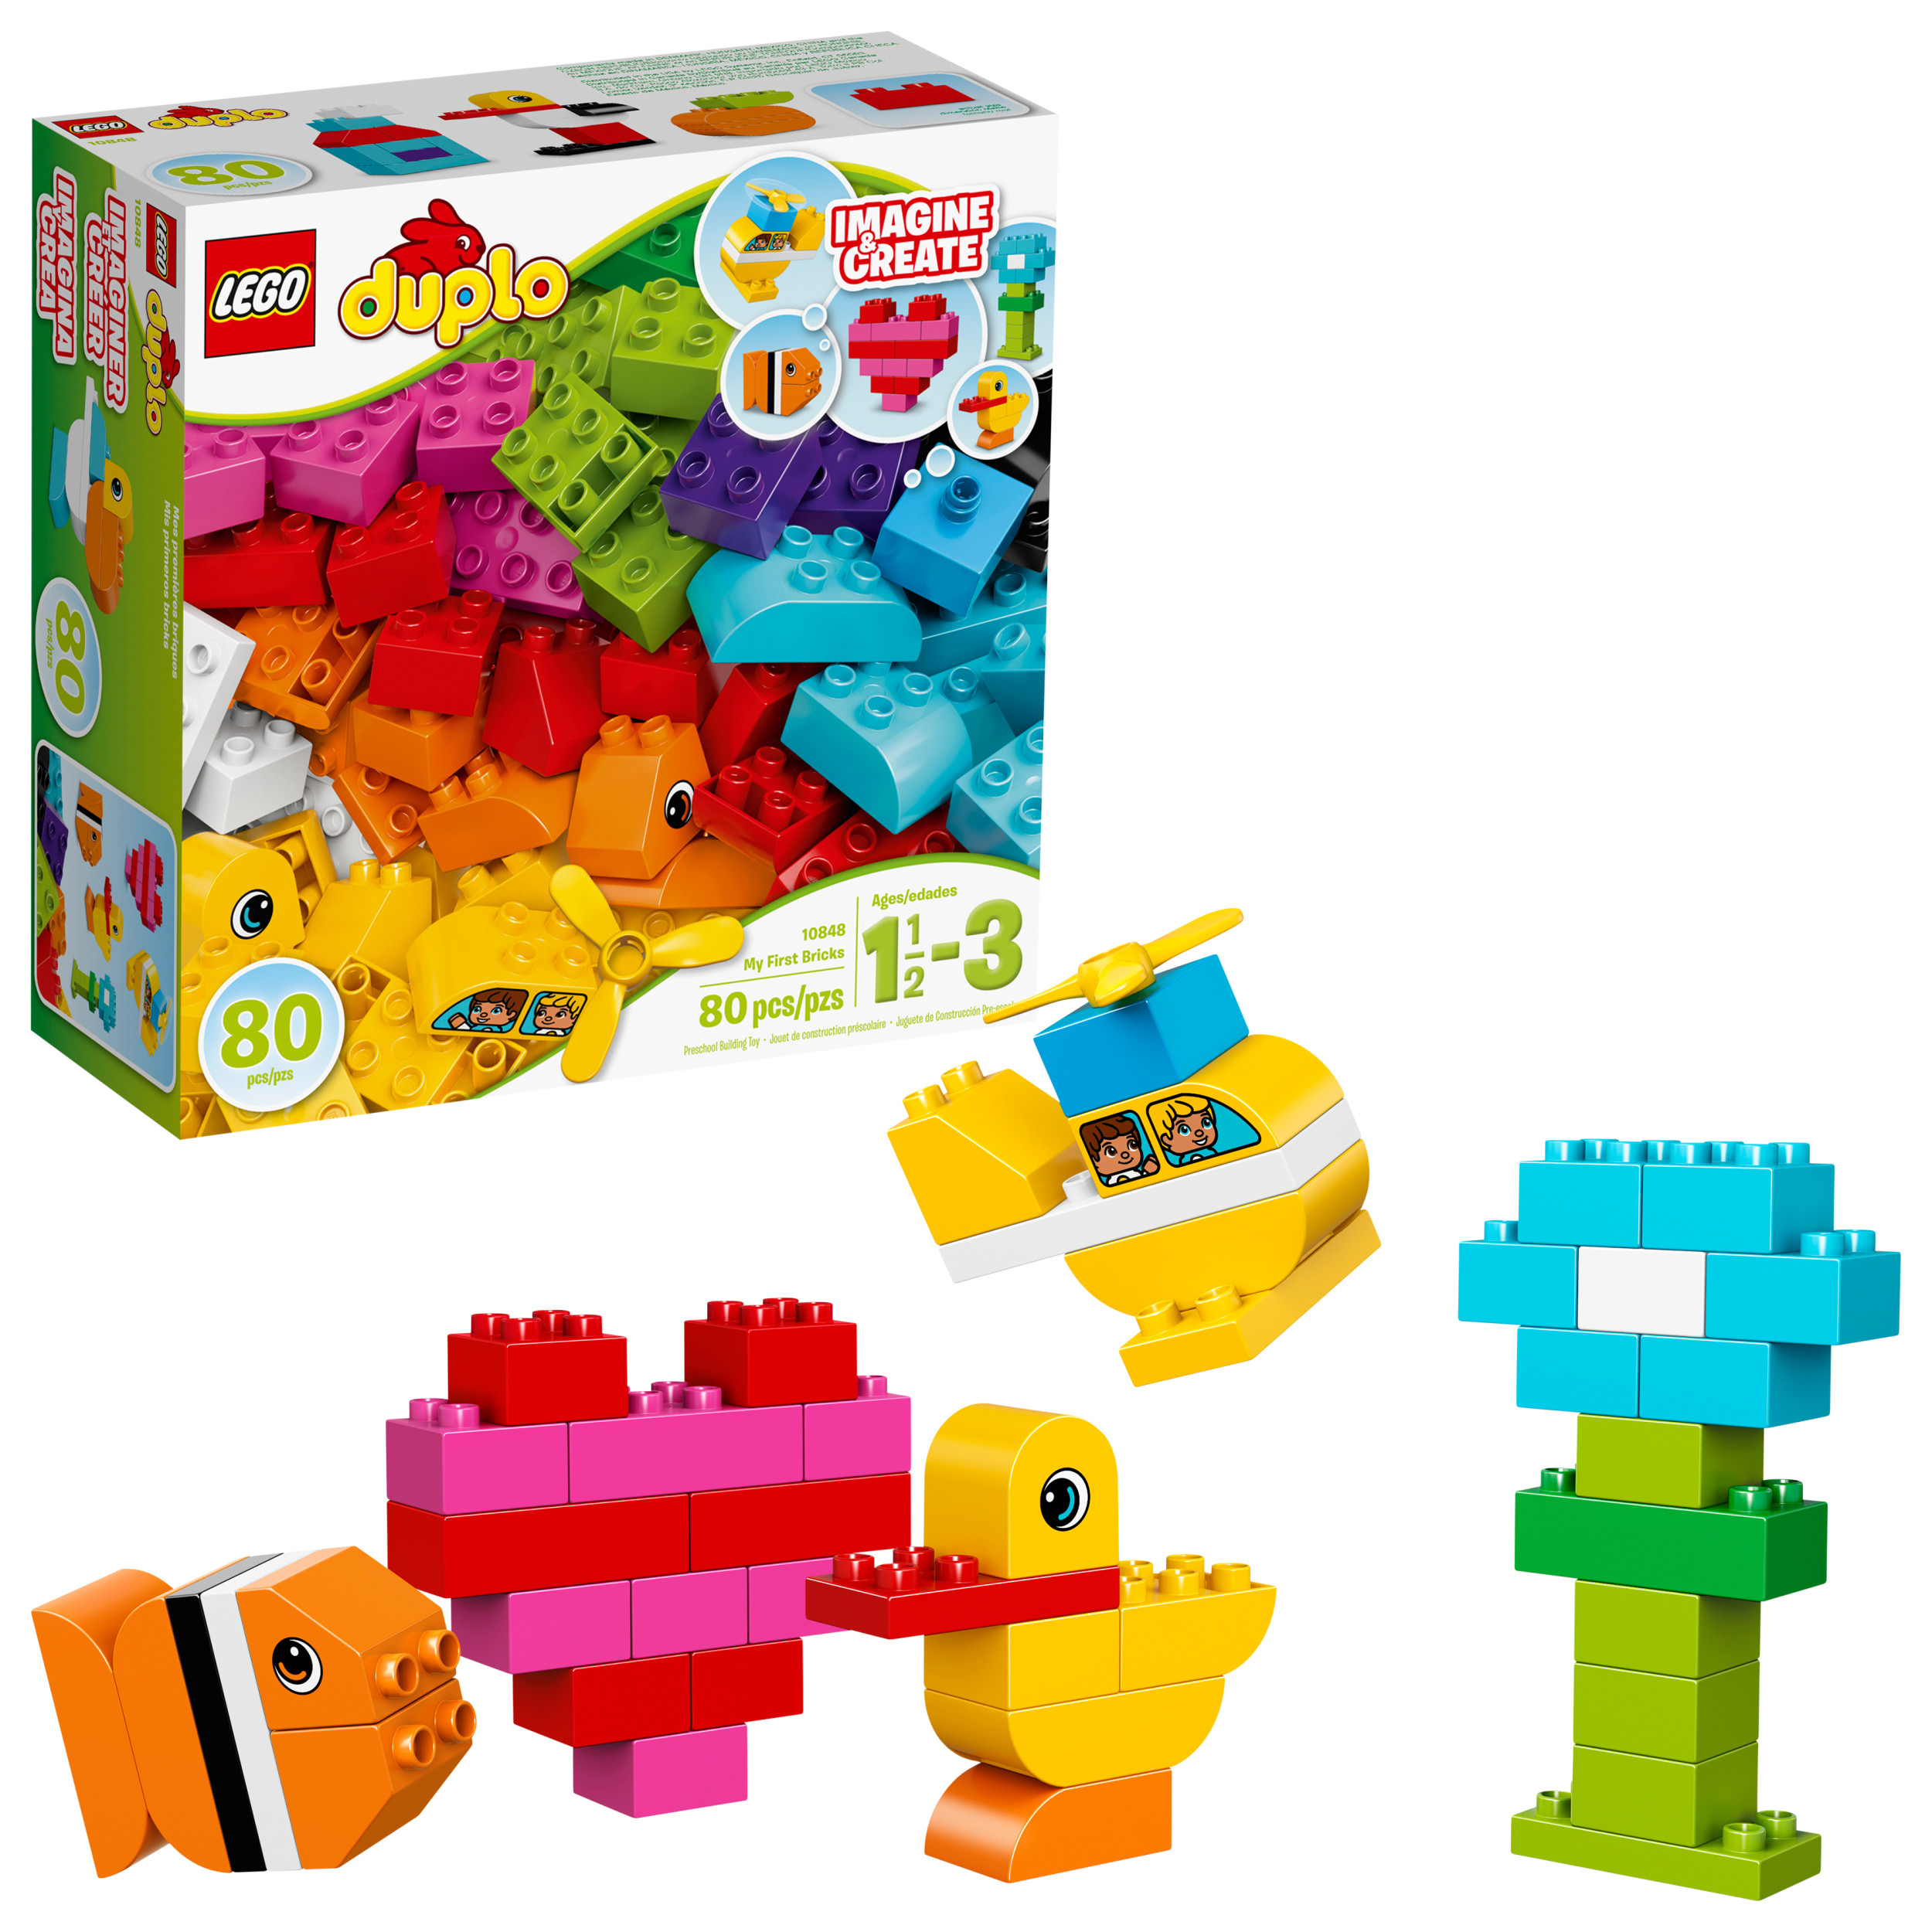 LEGO DUPLO My First Bricks 10848